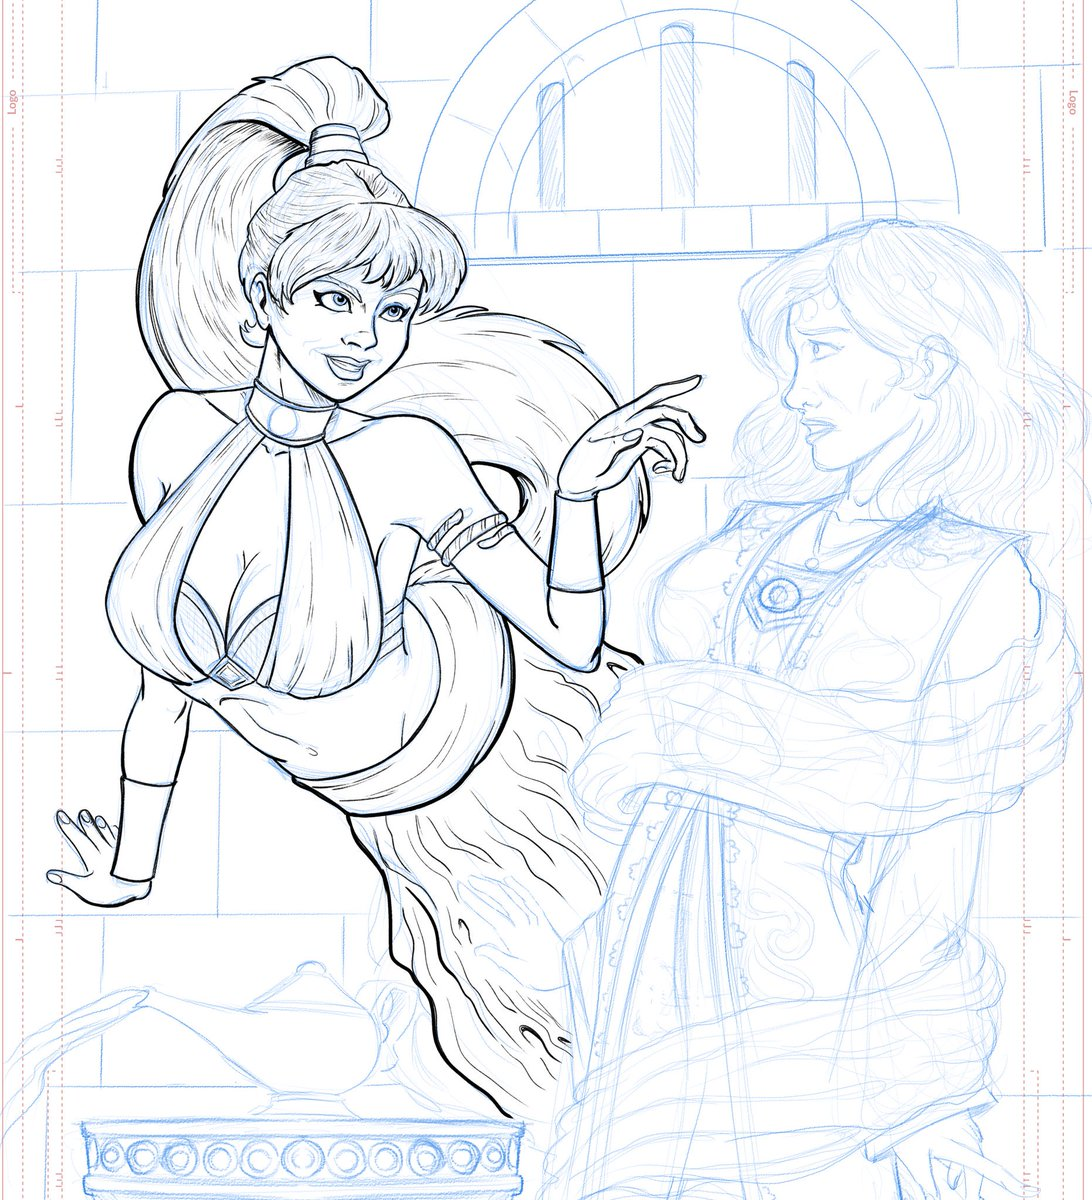 And now, Inks  #art #illustration #comics #comicartist #inking #lineart #wip #fantasy #genie  #genieinabottle #aladdin  #pinup #cosplay<br>http://pic.twitter.com/TapD9gqQSv